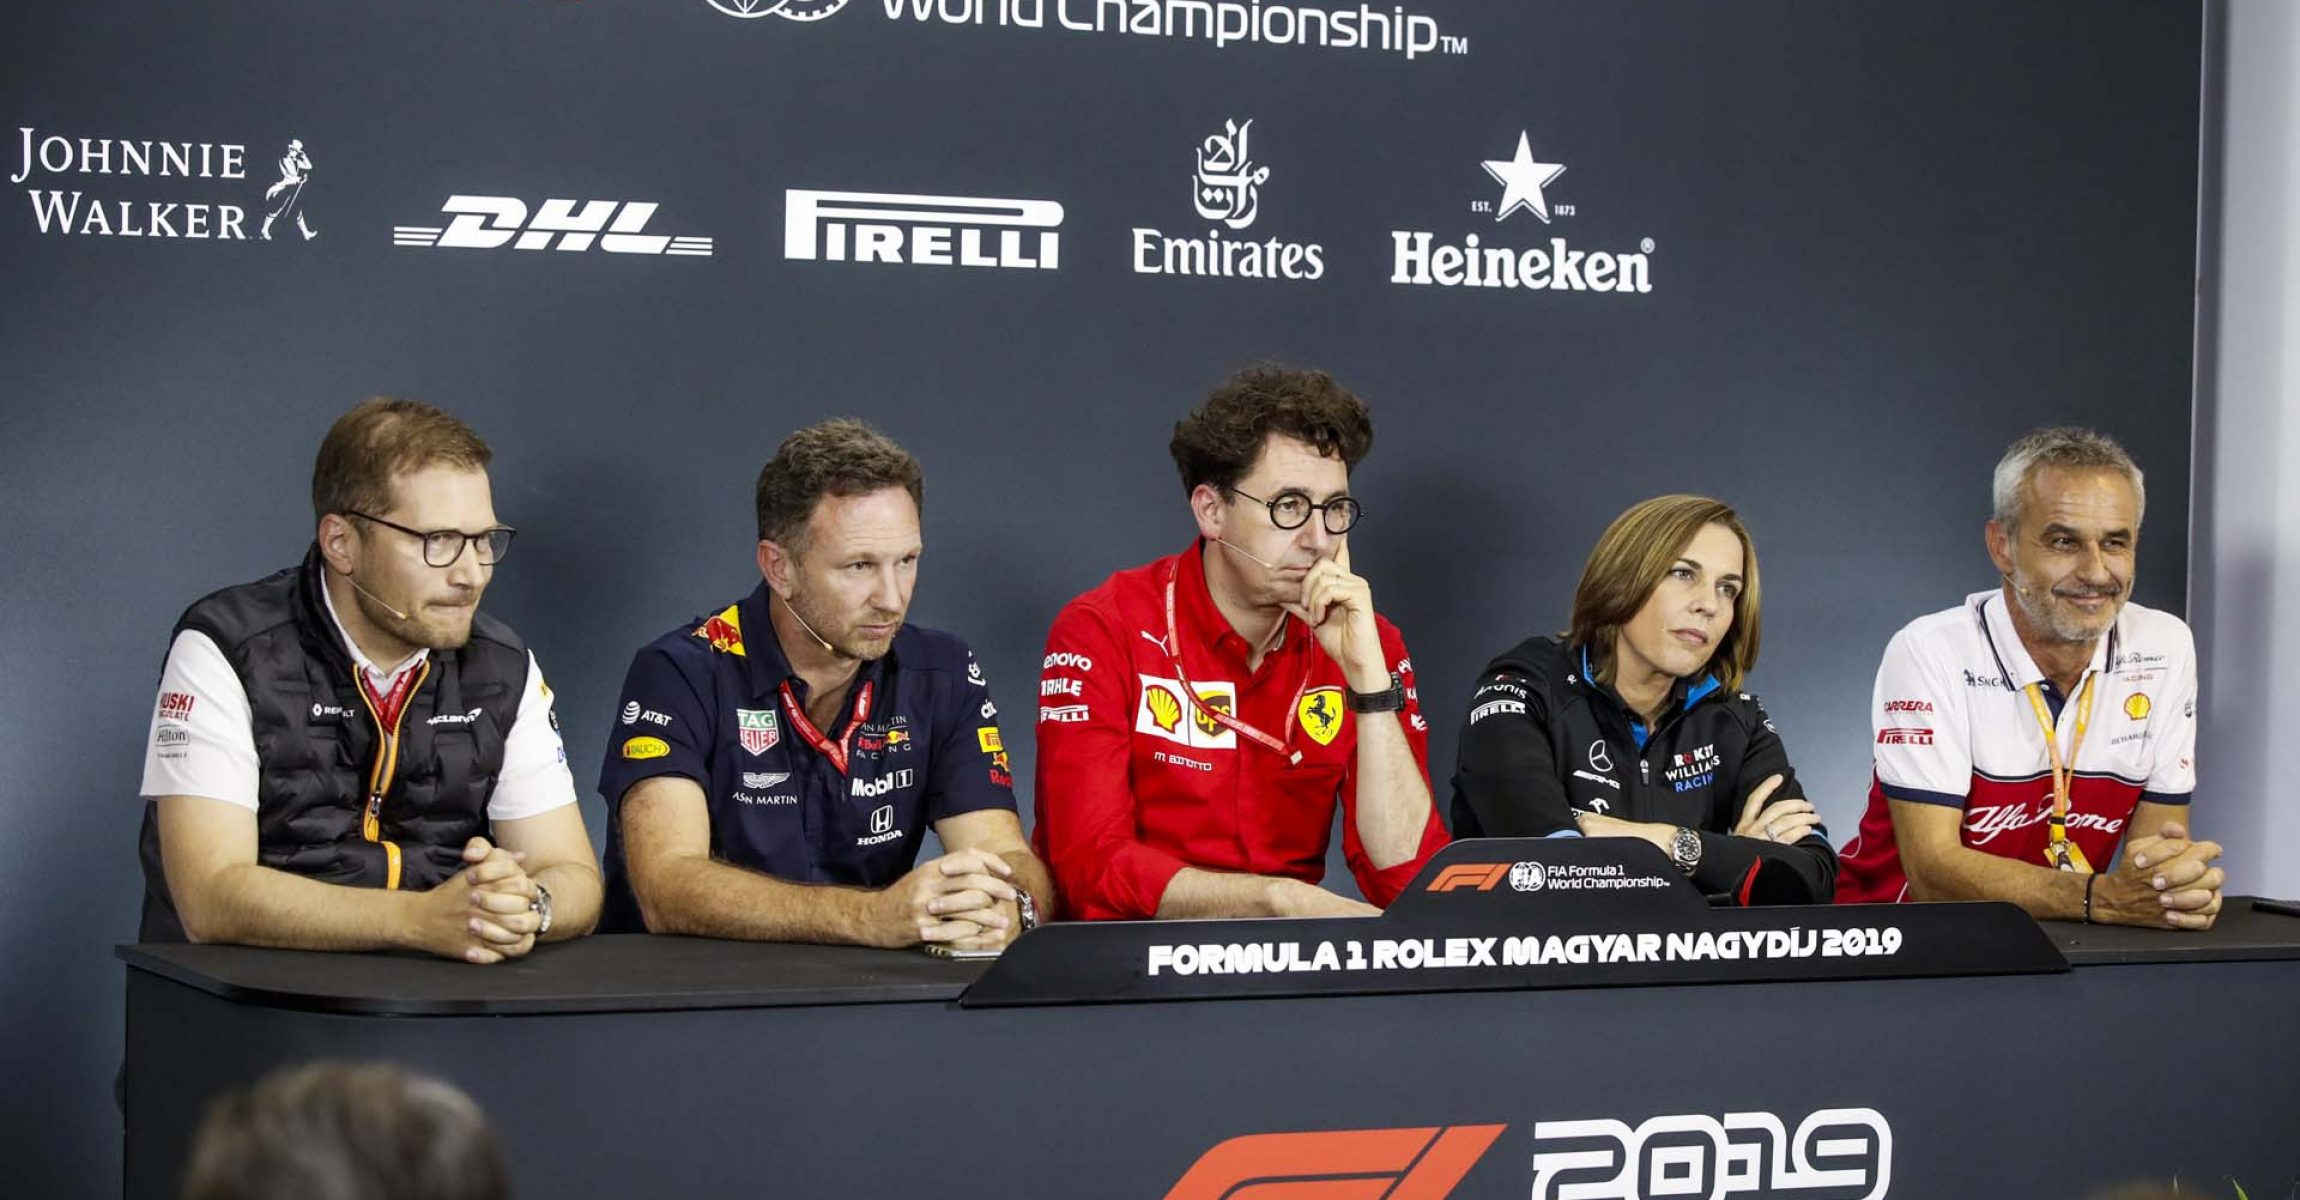 Press conference: SEIDL Andreas, Team Principal of McLaren Racing, HORNER Christian (gbr), Team Principal of Aston Martin Red Bull Racing, BINOTTO Mattia (ita), Team Principal & Technical Director of the Scuderia Ferrari, WILLIAMS Claire (gbr), Deputy Team Principal of Williams F1 Racing, ZEHNDER Beat, Team Manager of Alfa Romeo Racing, portrait during the 2019 Formula One World Championship, Grand Prix of Hungary from august 1 to 4, Hungaroring, Budapest - Photo Florent Gooden / DPPI